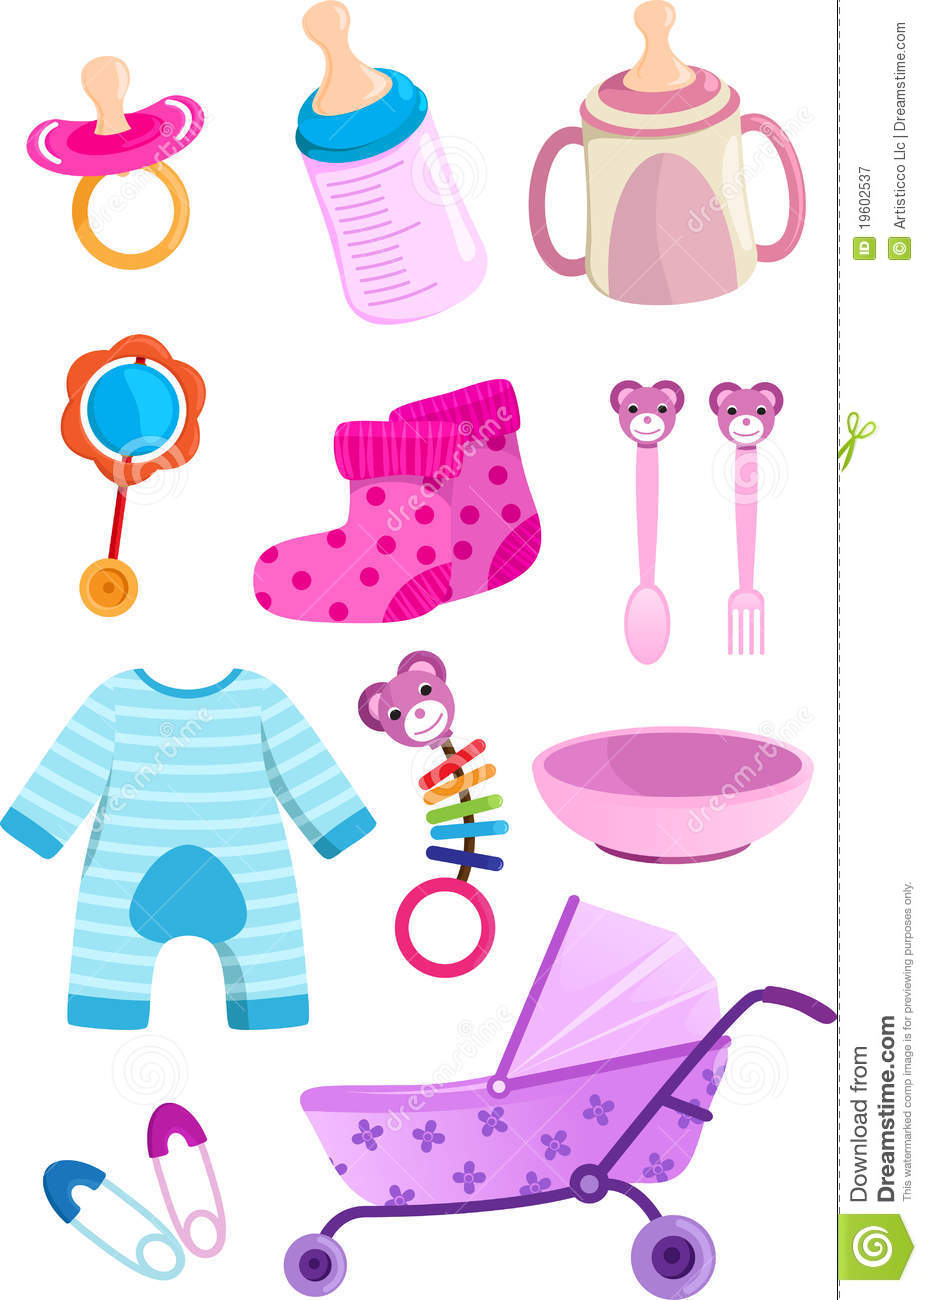 Baby girl supplies clipart clipart stock Baby items clipart free - ClipartFest clipart stock